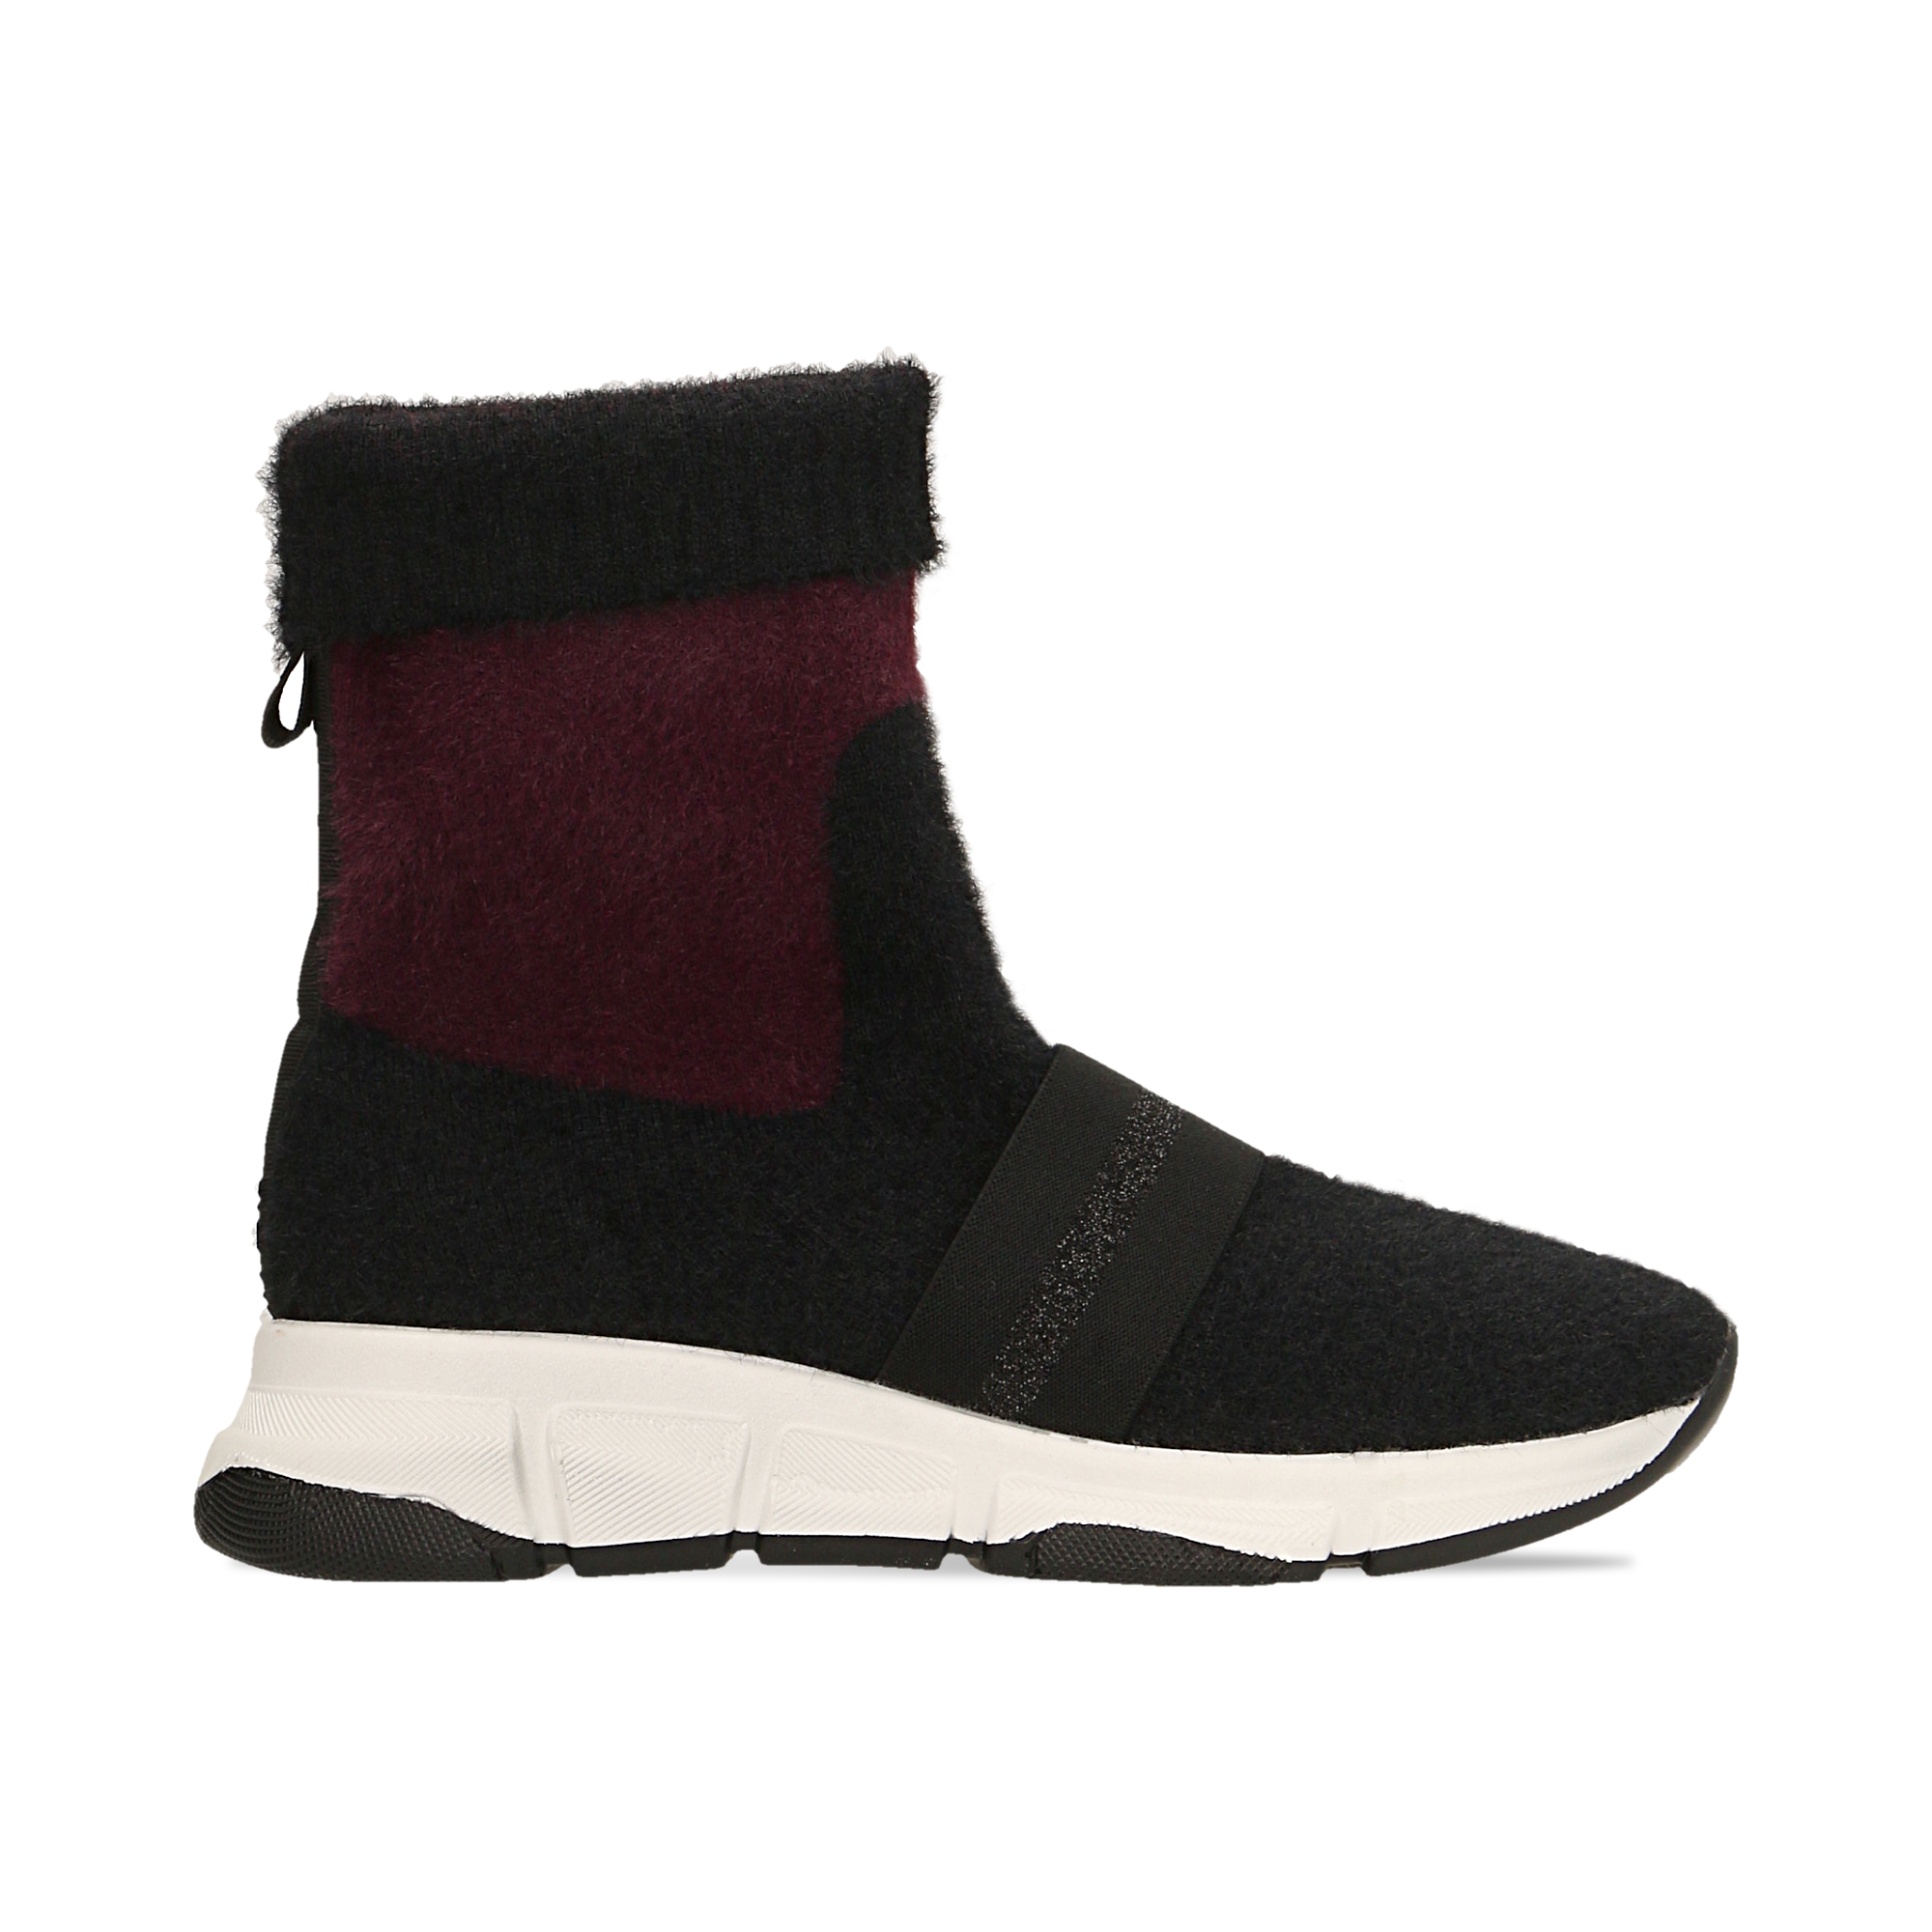 Sneakers nero-rosse sock boots con suola in gomma bianca